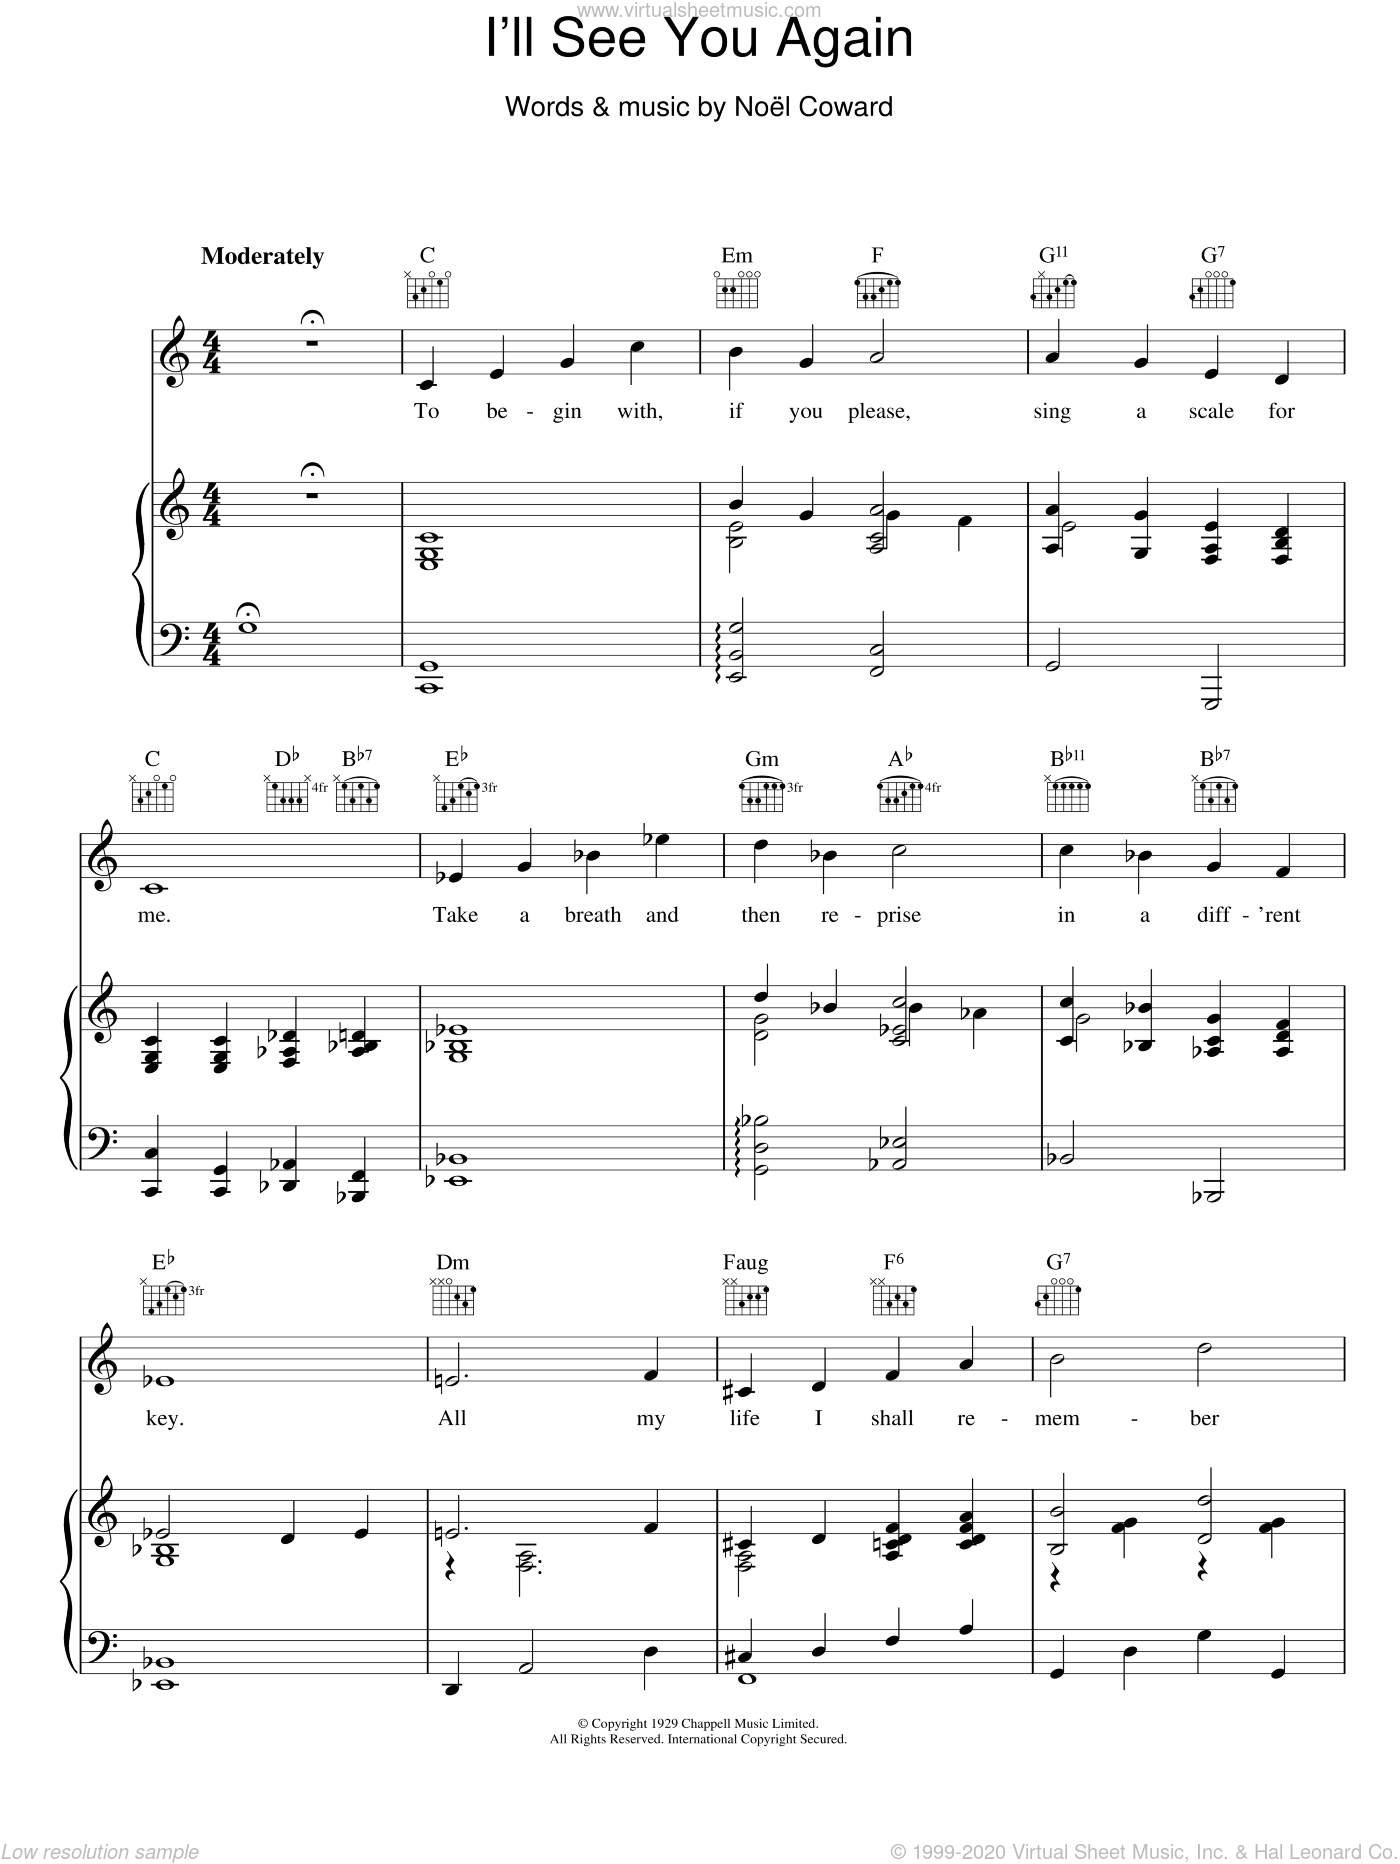 I'll See You Again sheet music for voice, piano or guitar by Noel Coward, intermediate skill level